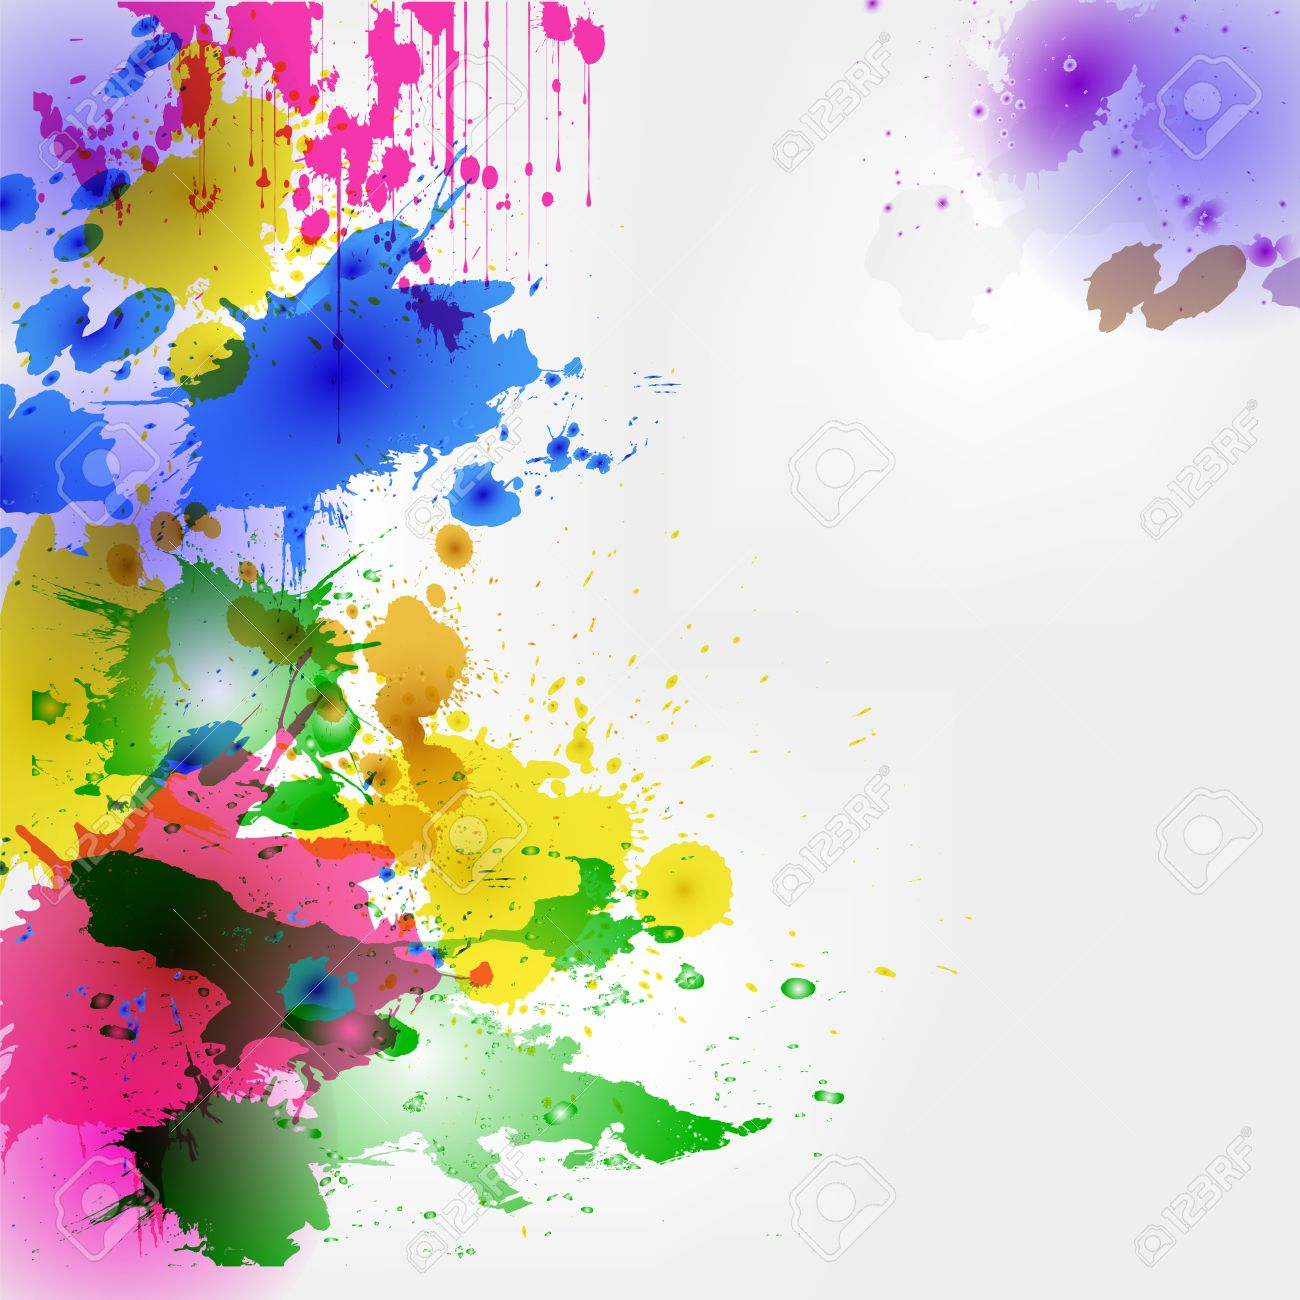 colorful watercolor stains and